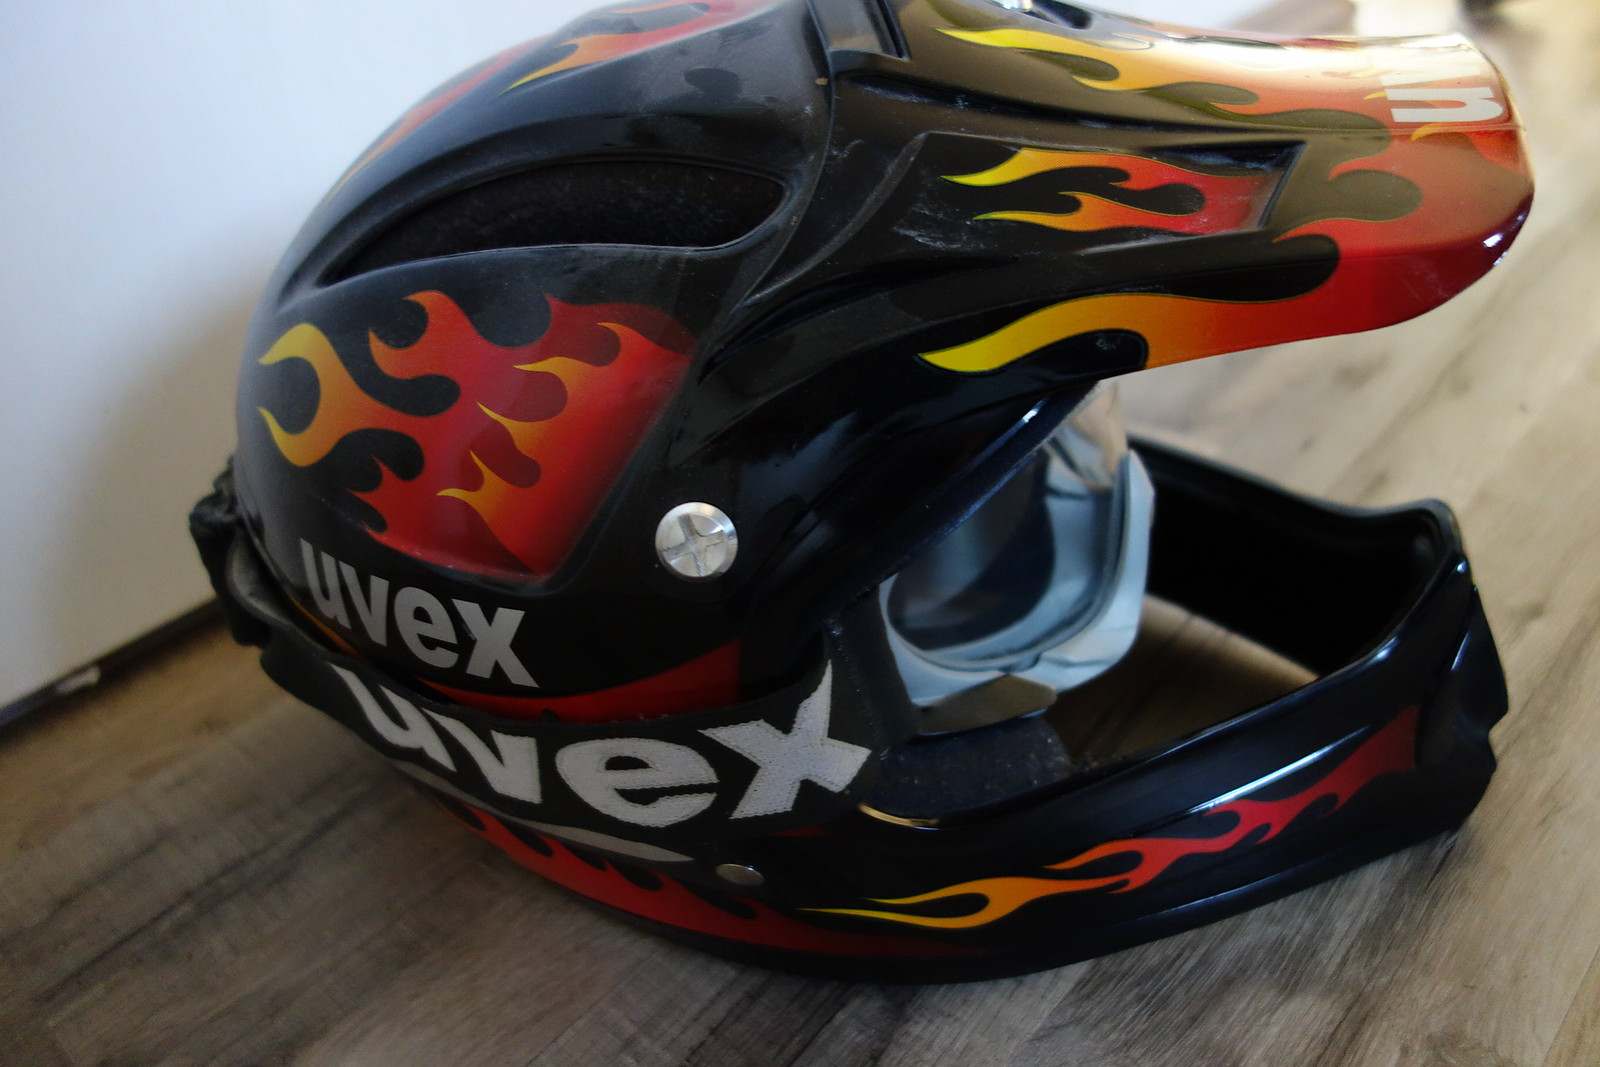 uvex downhill helm mit brille kult retro flammen. Black Bedroom Furniture Sets. Home Design Ideas